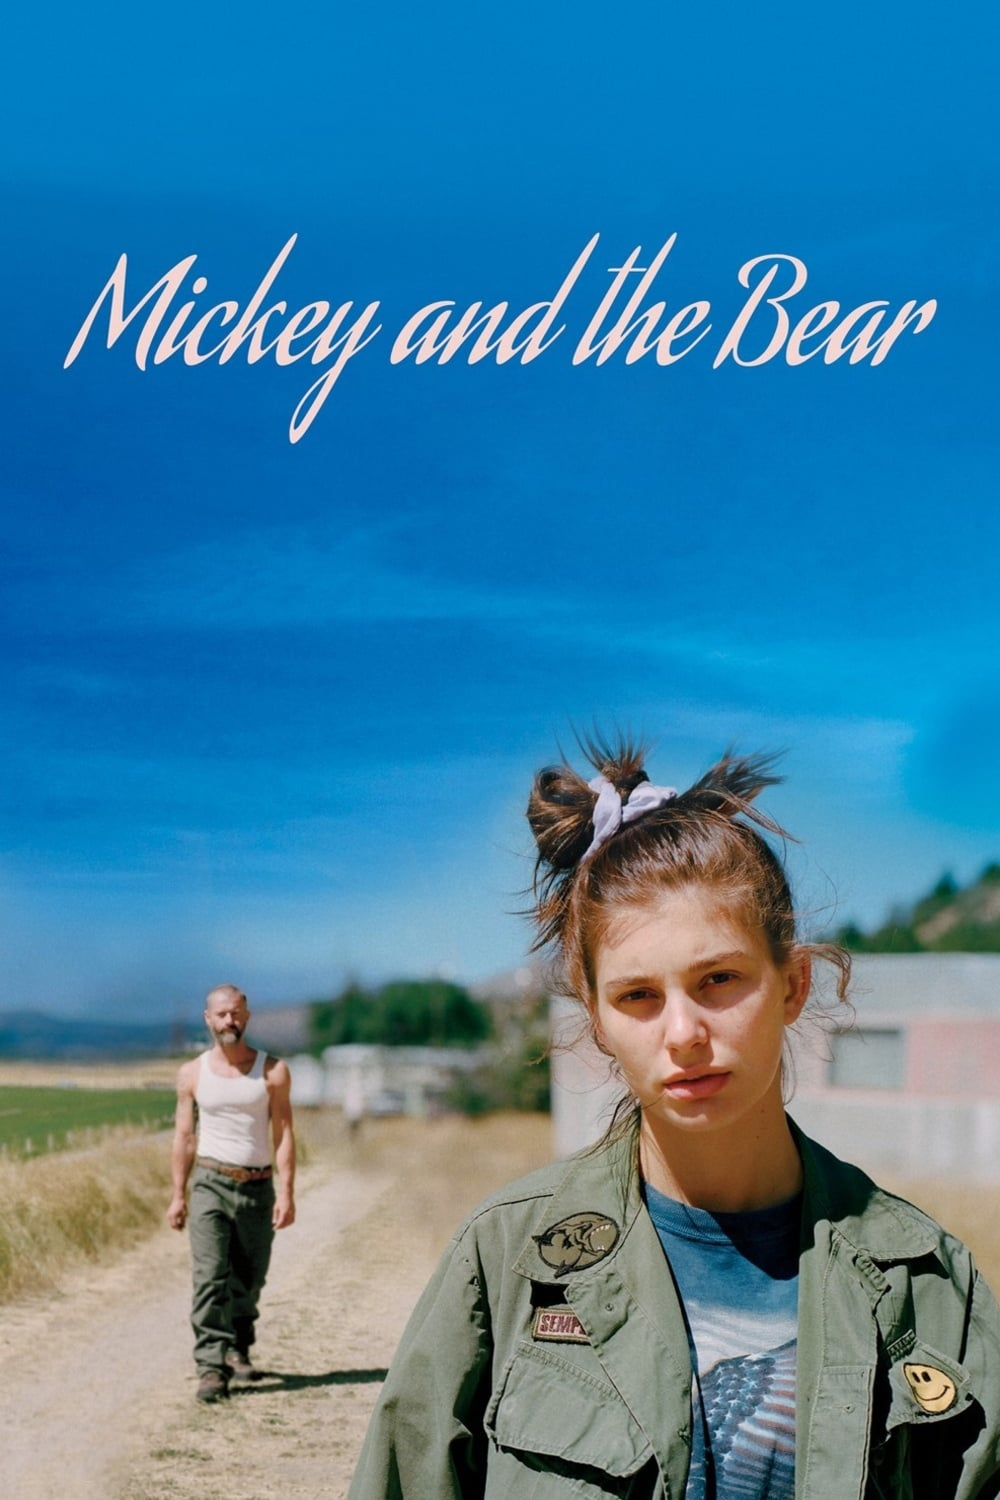 Mickey and the Bear